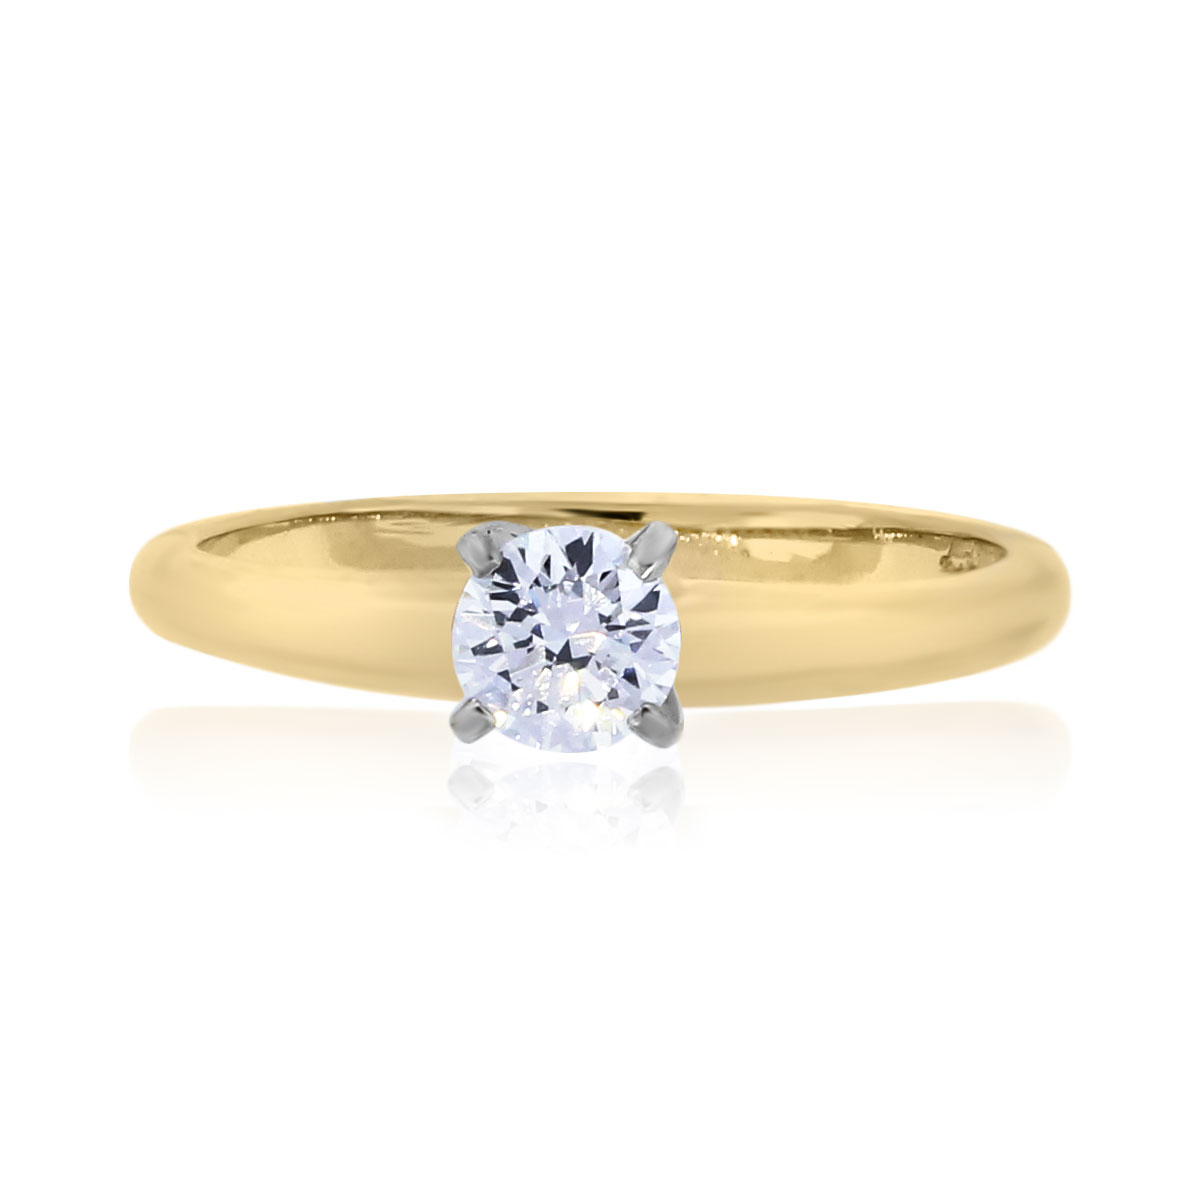 You are viewing this 0.31CT GIA Certified Round Diamond Engagement Ring!